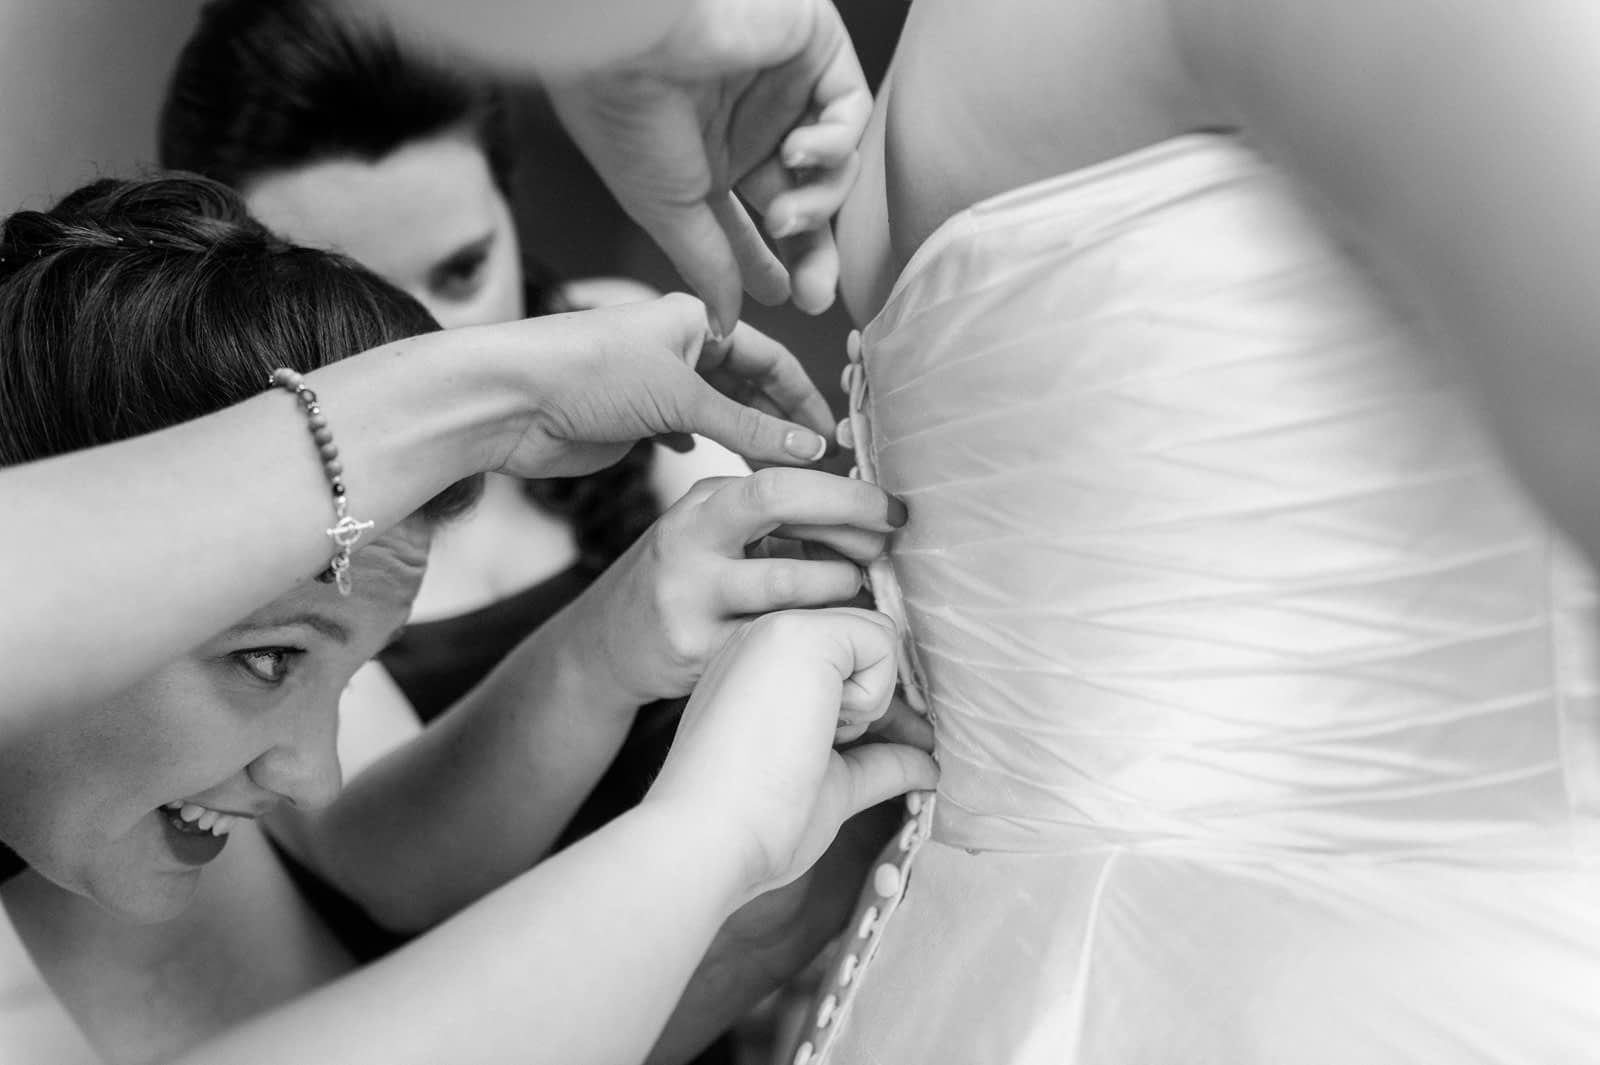 Bridesmaids working together to buttoning up wedding dress